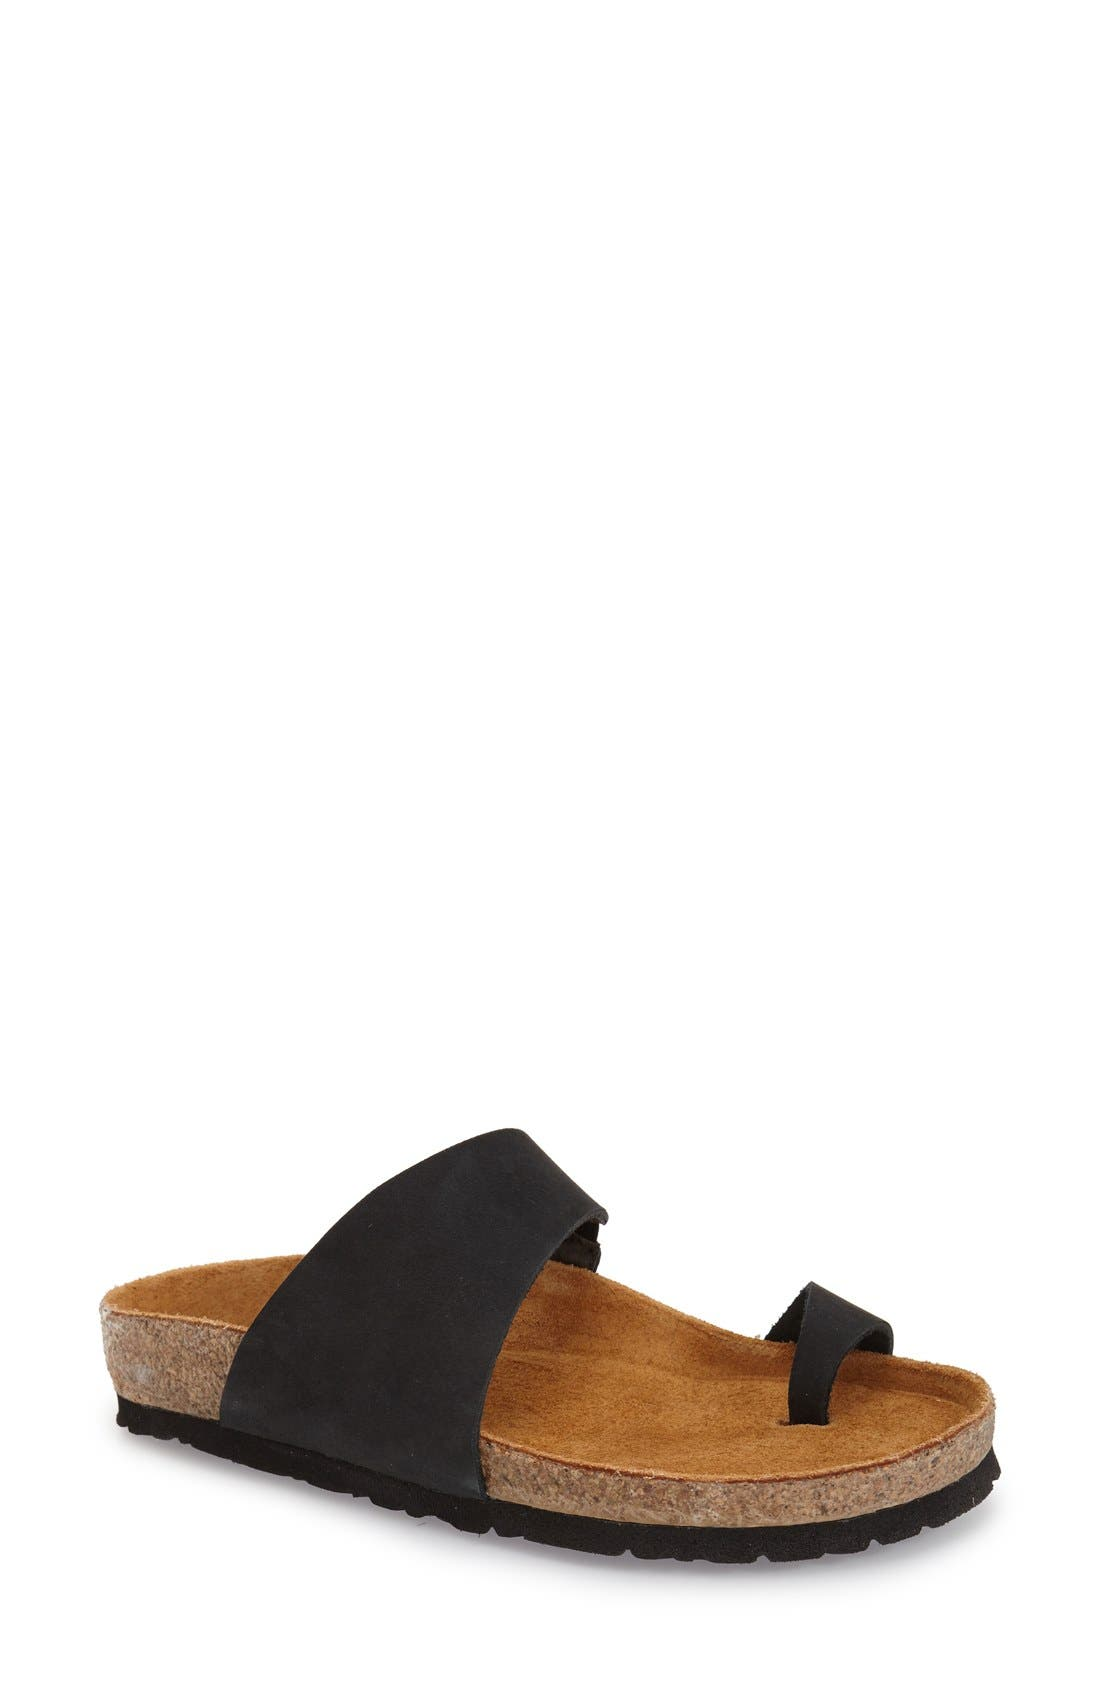 'Santa Fe' Sandal,                         Main,                         color, Black Nubuck Leather